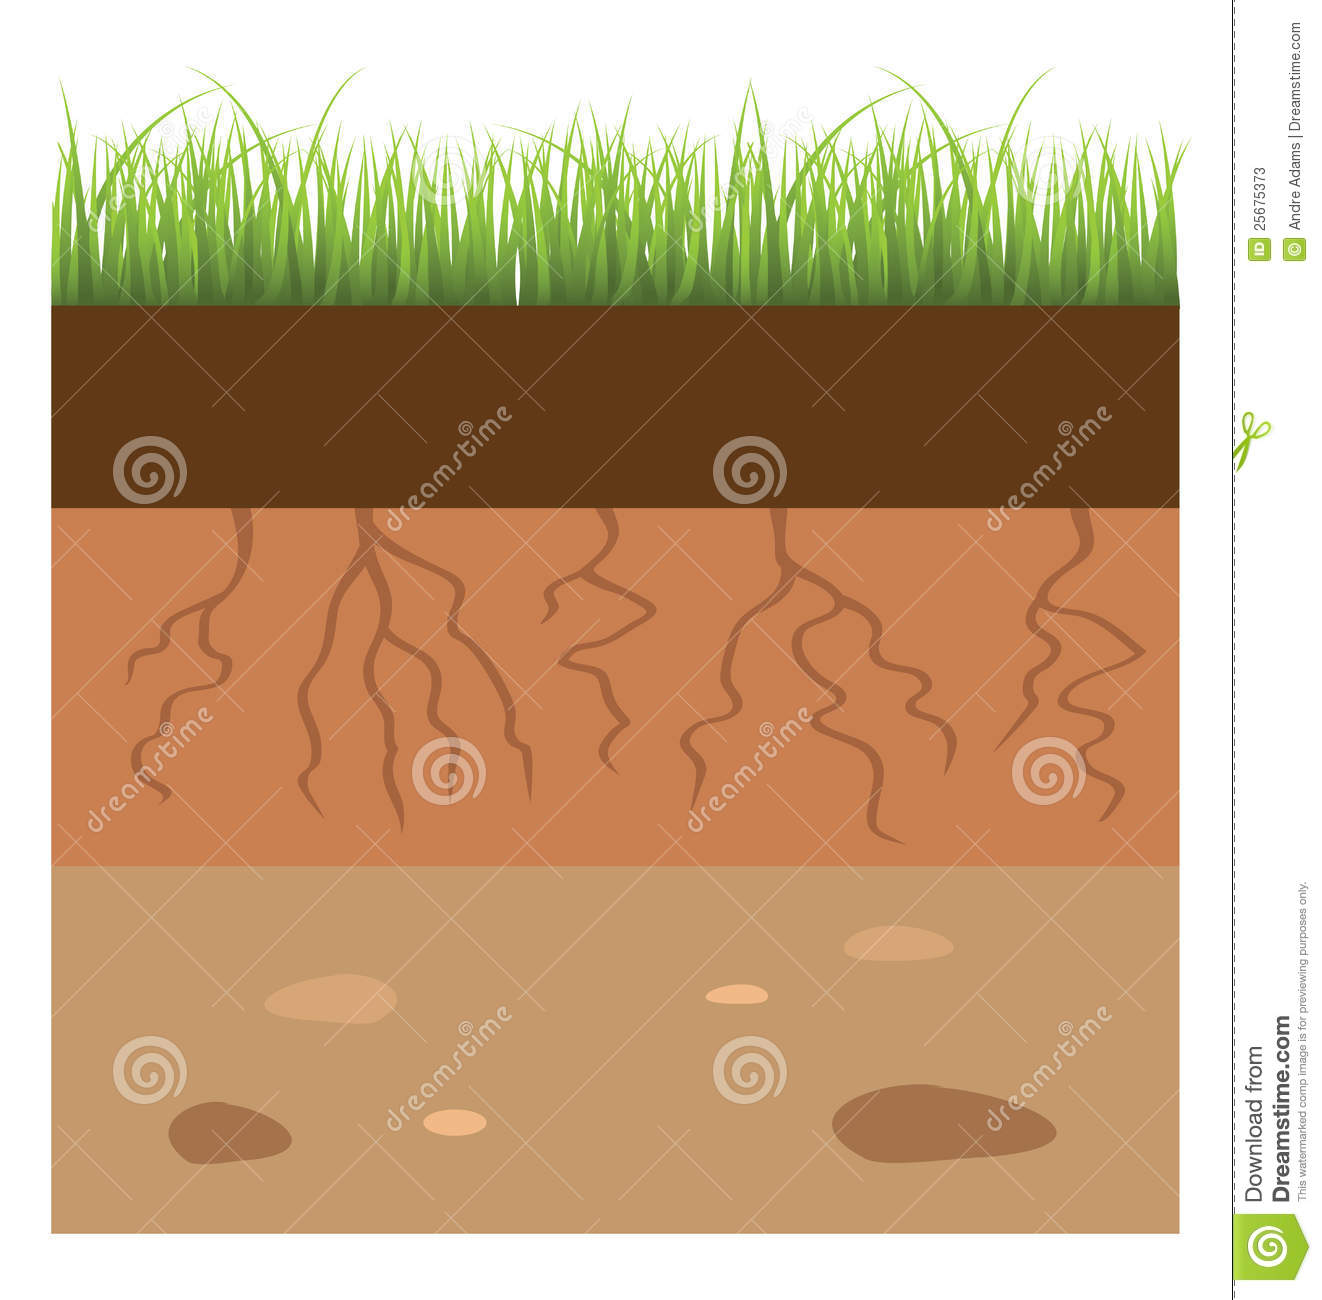 Soil Cartoon Clipart.